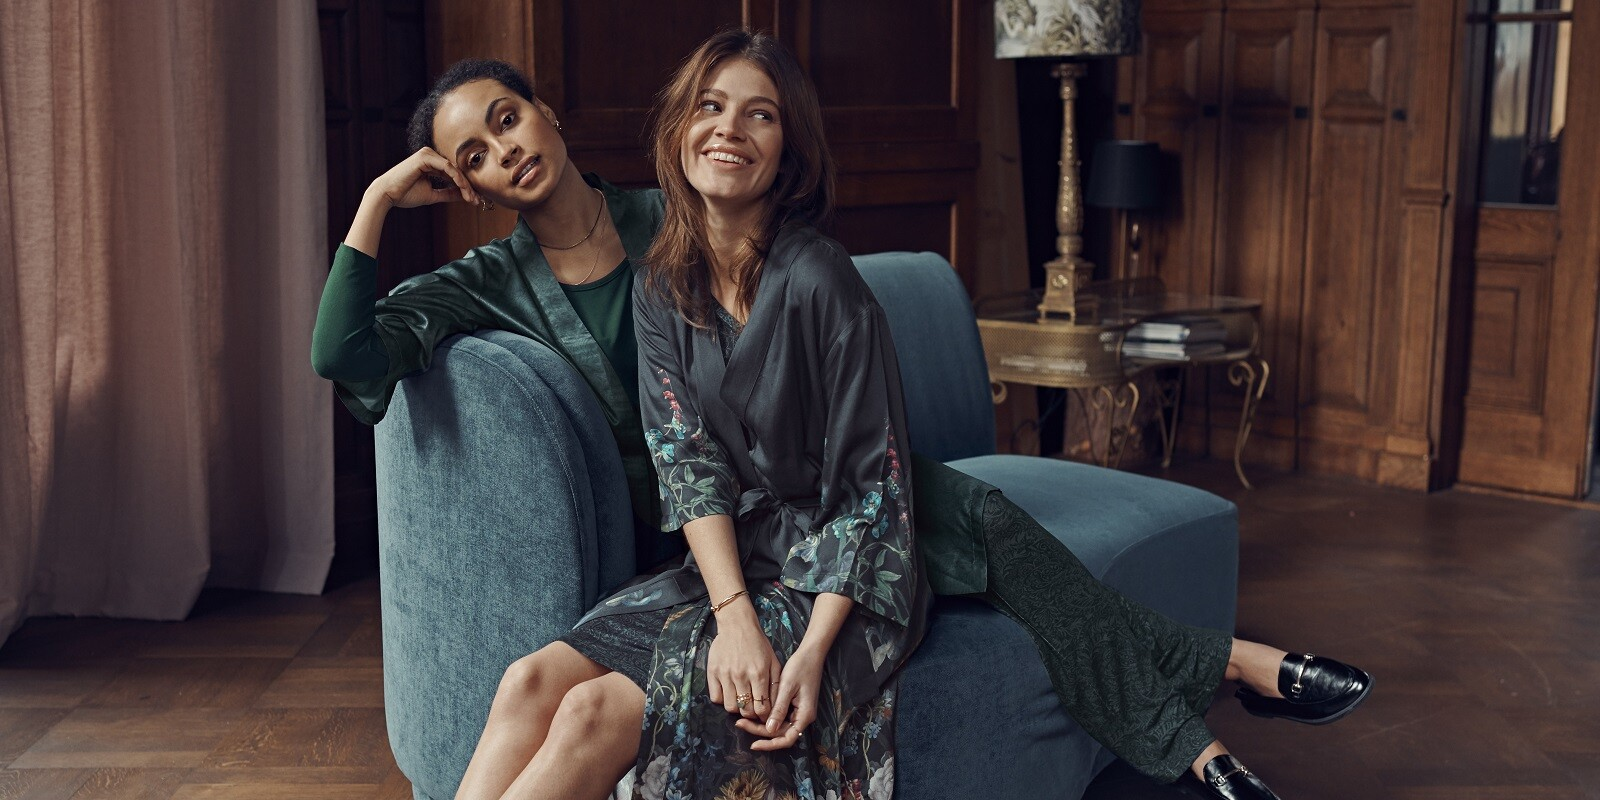 Fall Winter '21 collectie: Soothing your senses